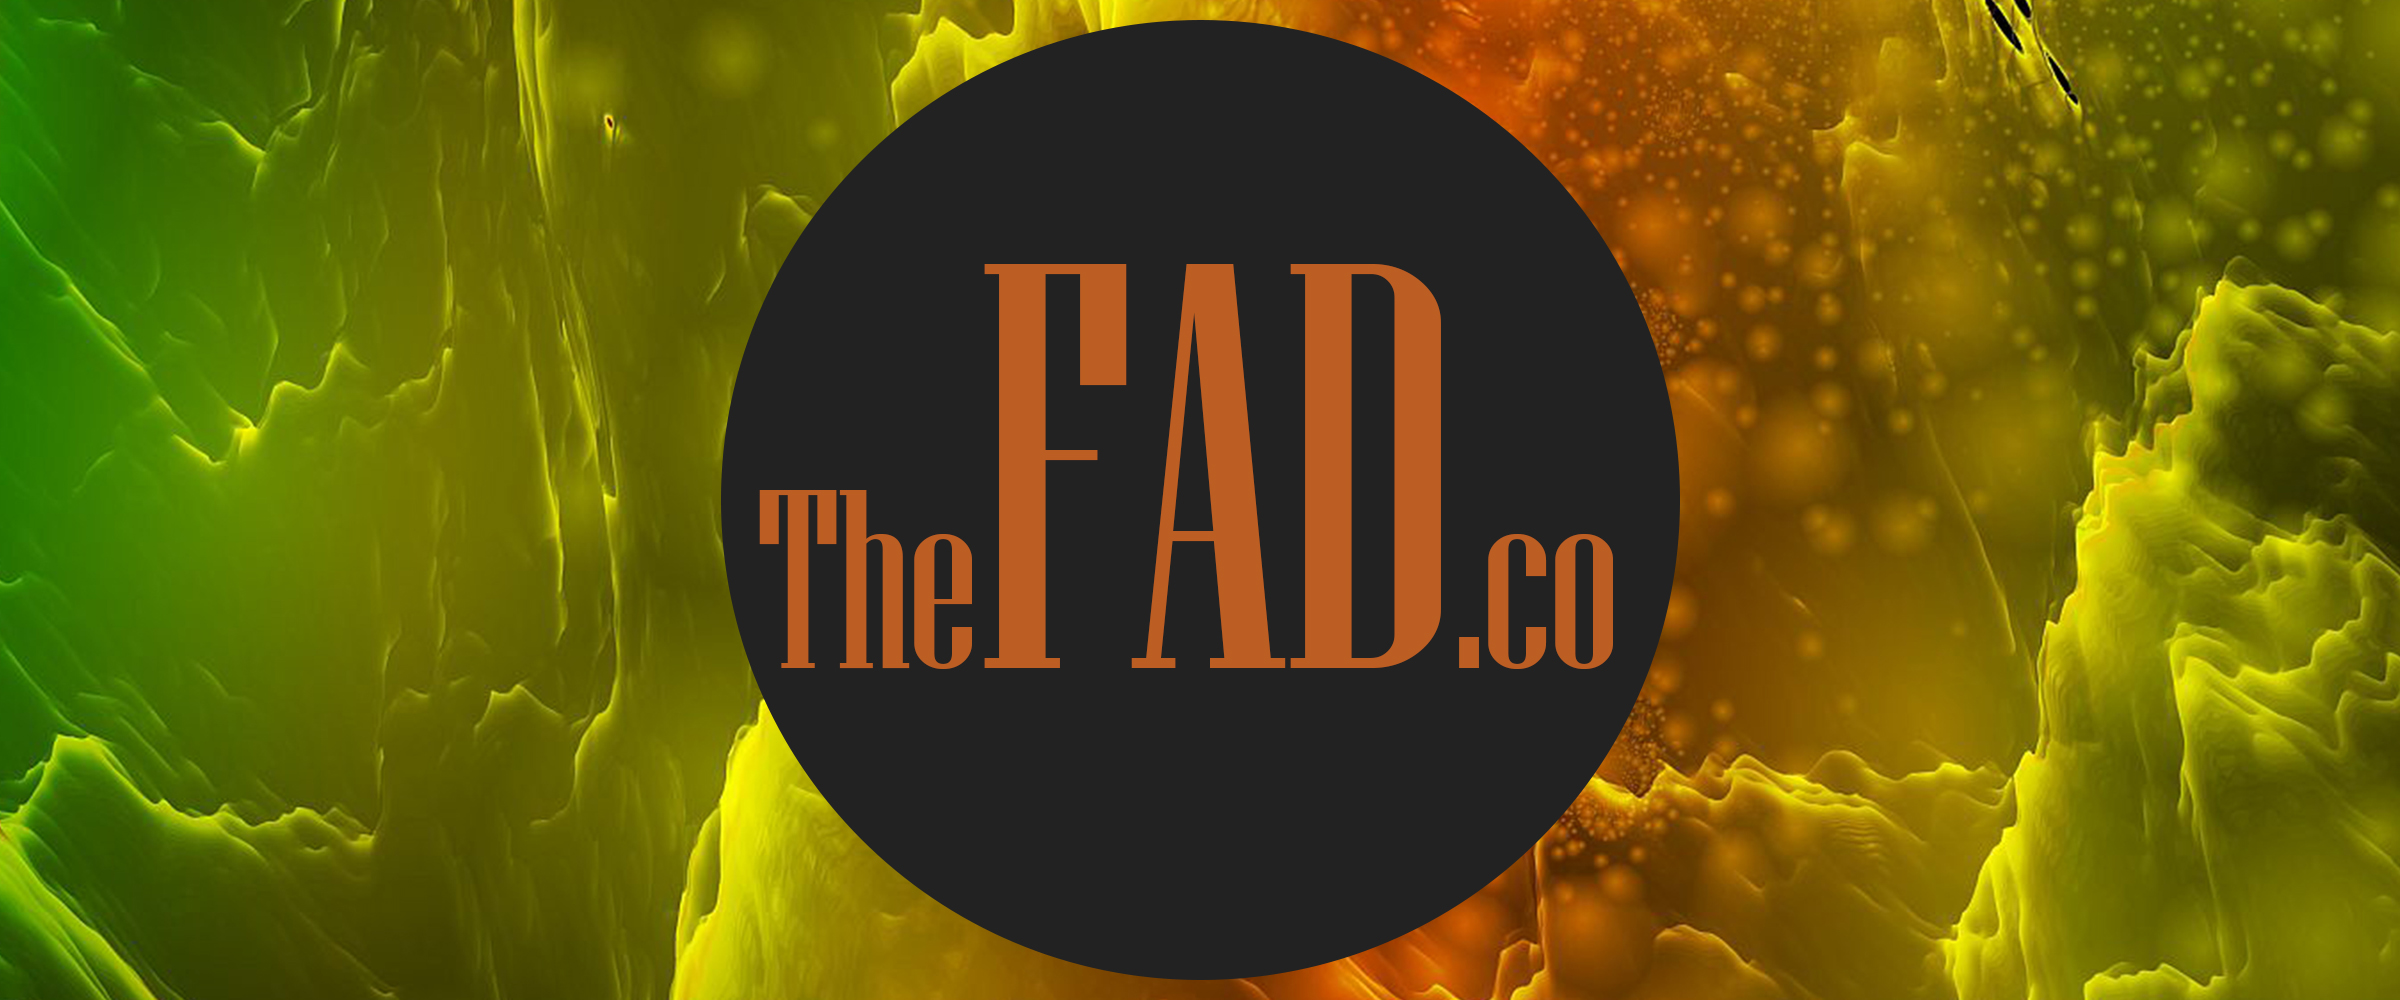 thefad.co-collection-slider